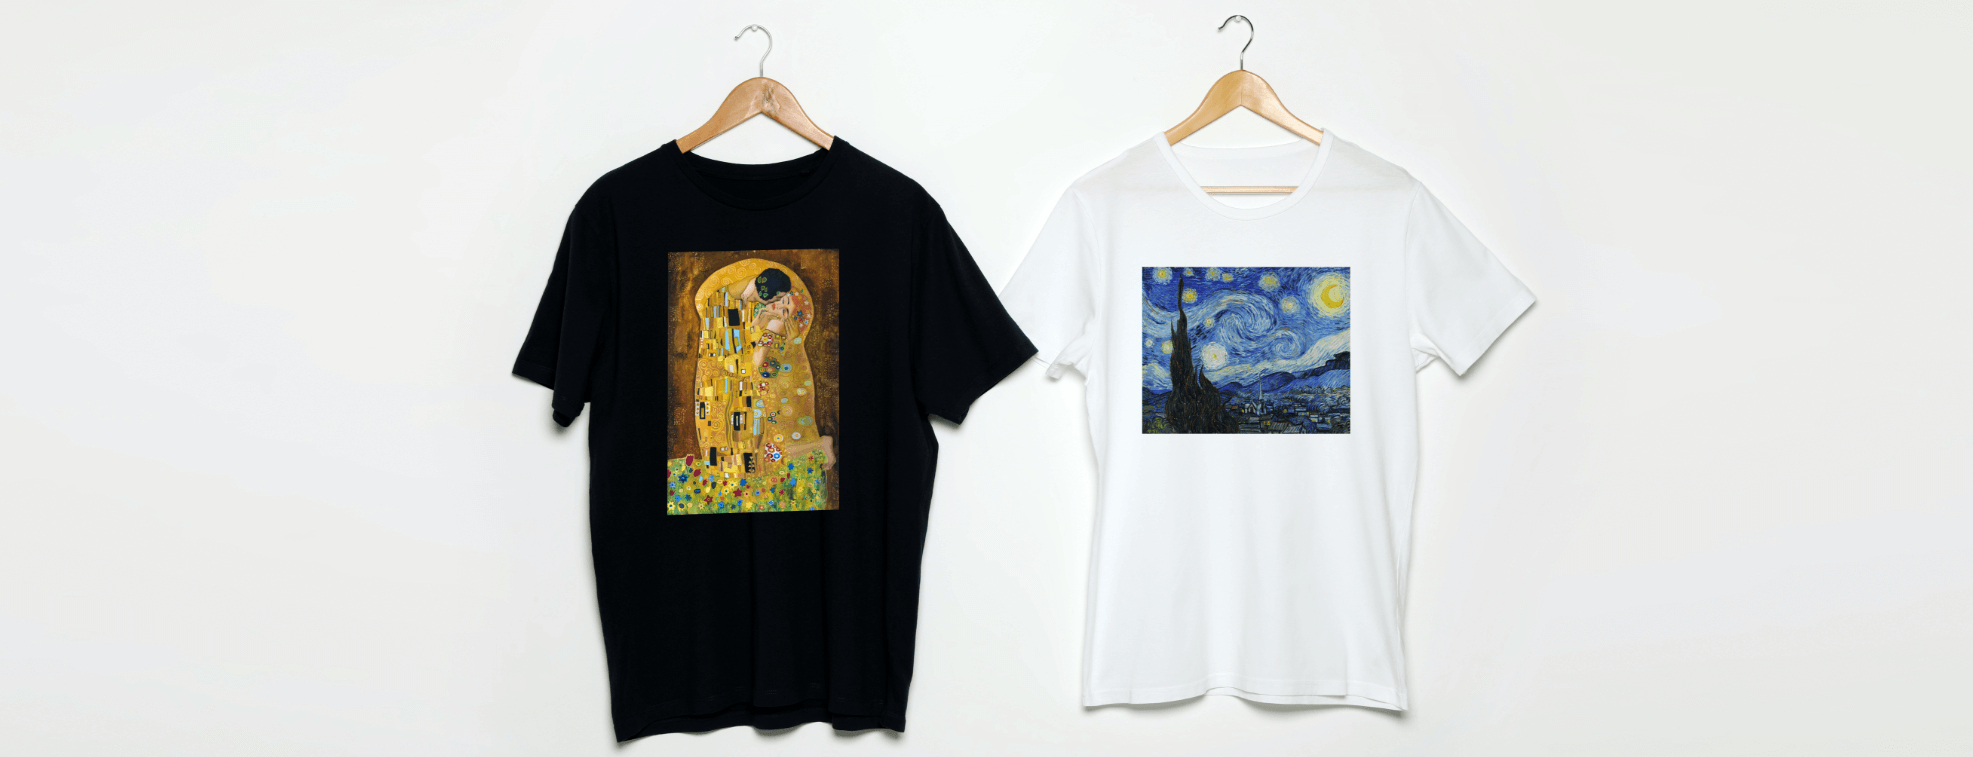 Custom T-shirts with art works by Klimt and Van Gogh